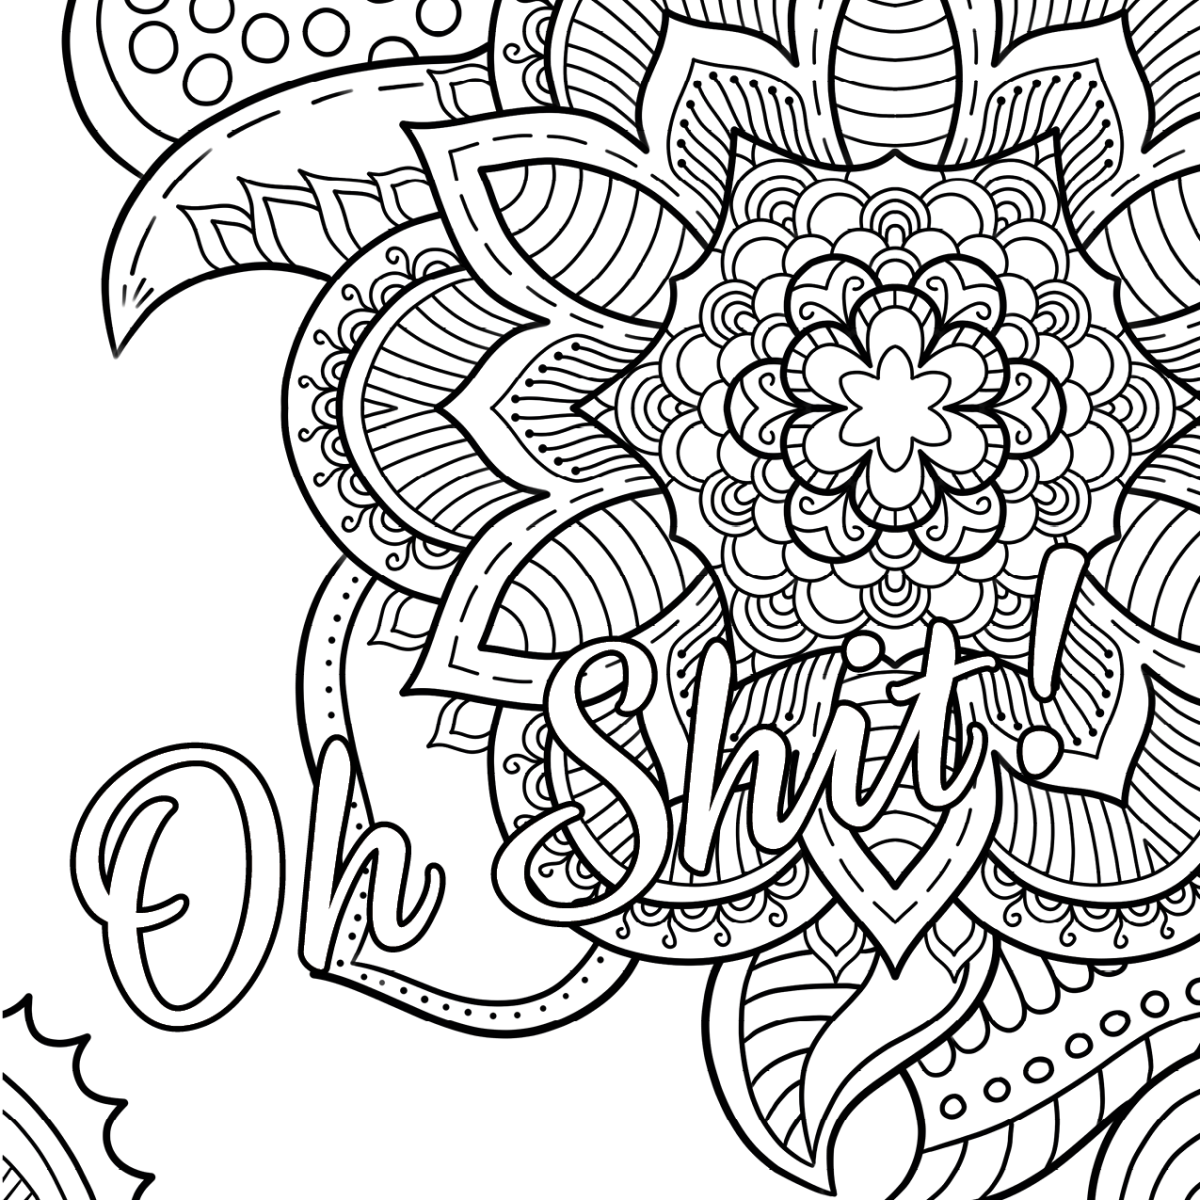 Oh Shit! - Free Coloring Page - Cursing Therapy Coloring Book | Free ...